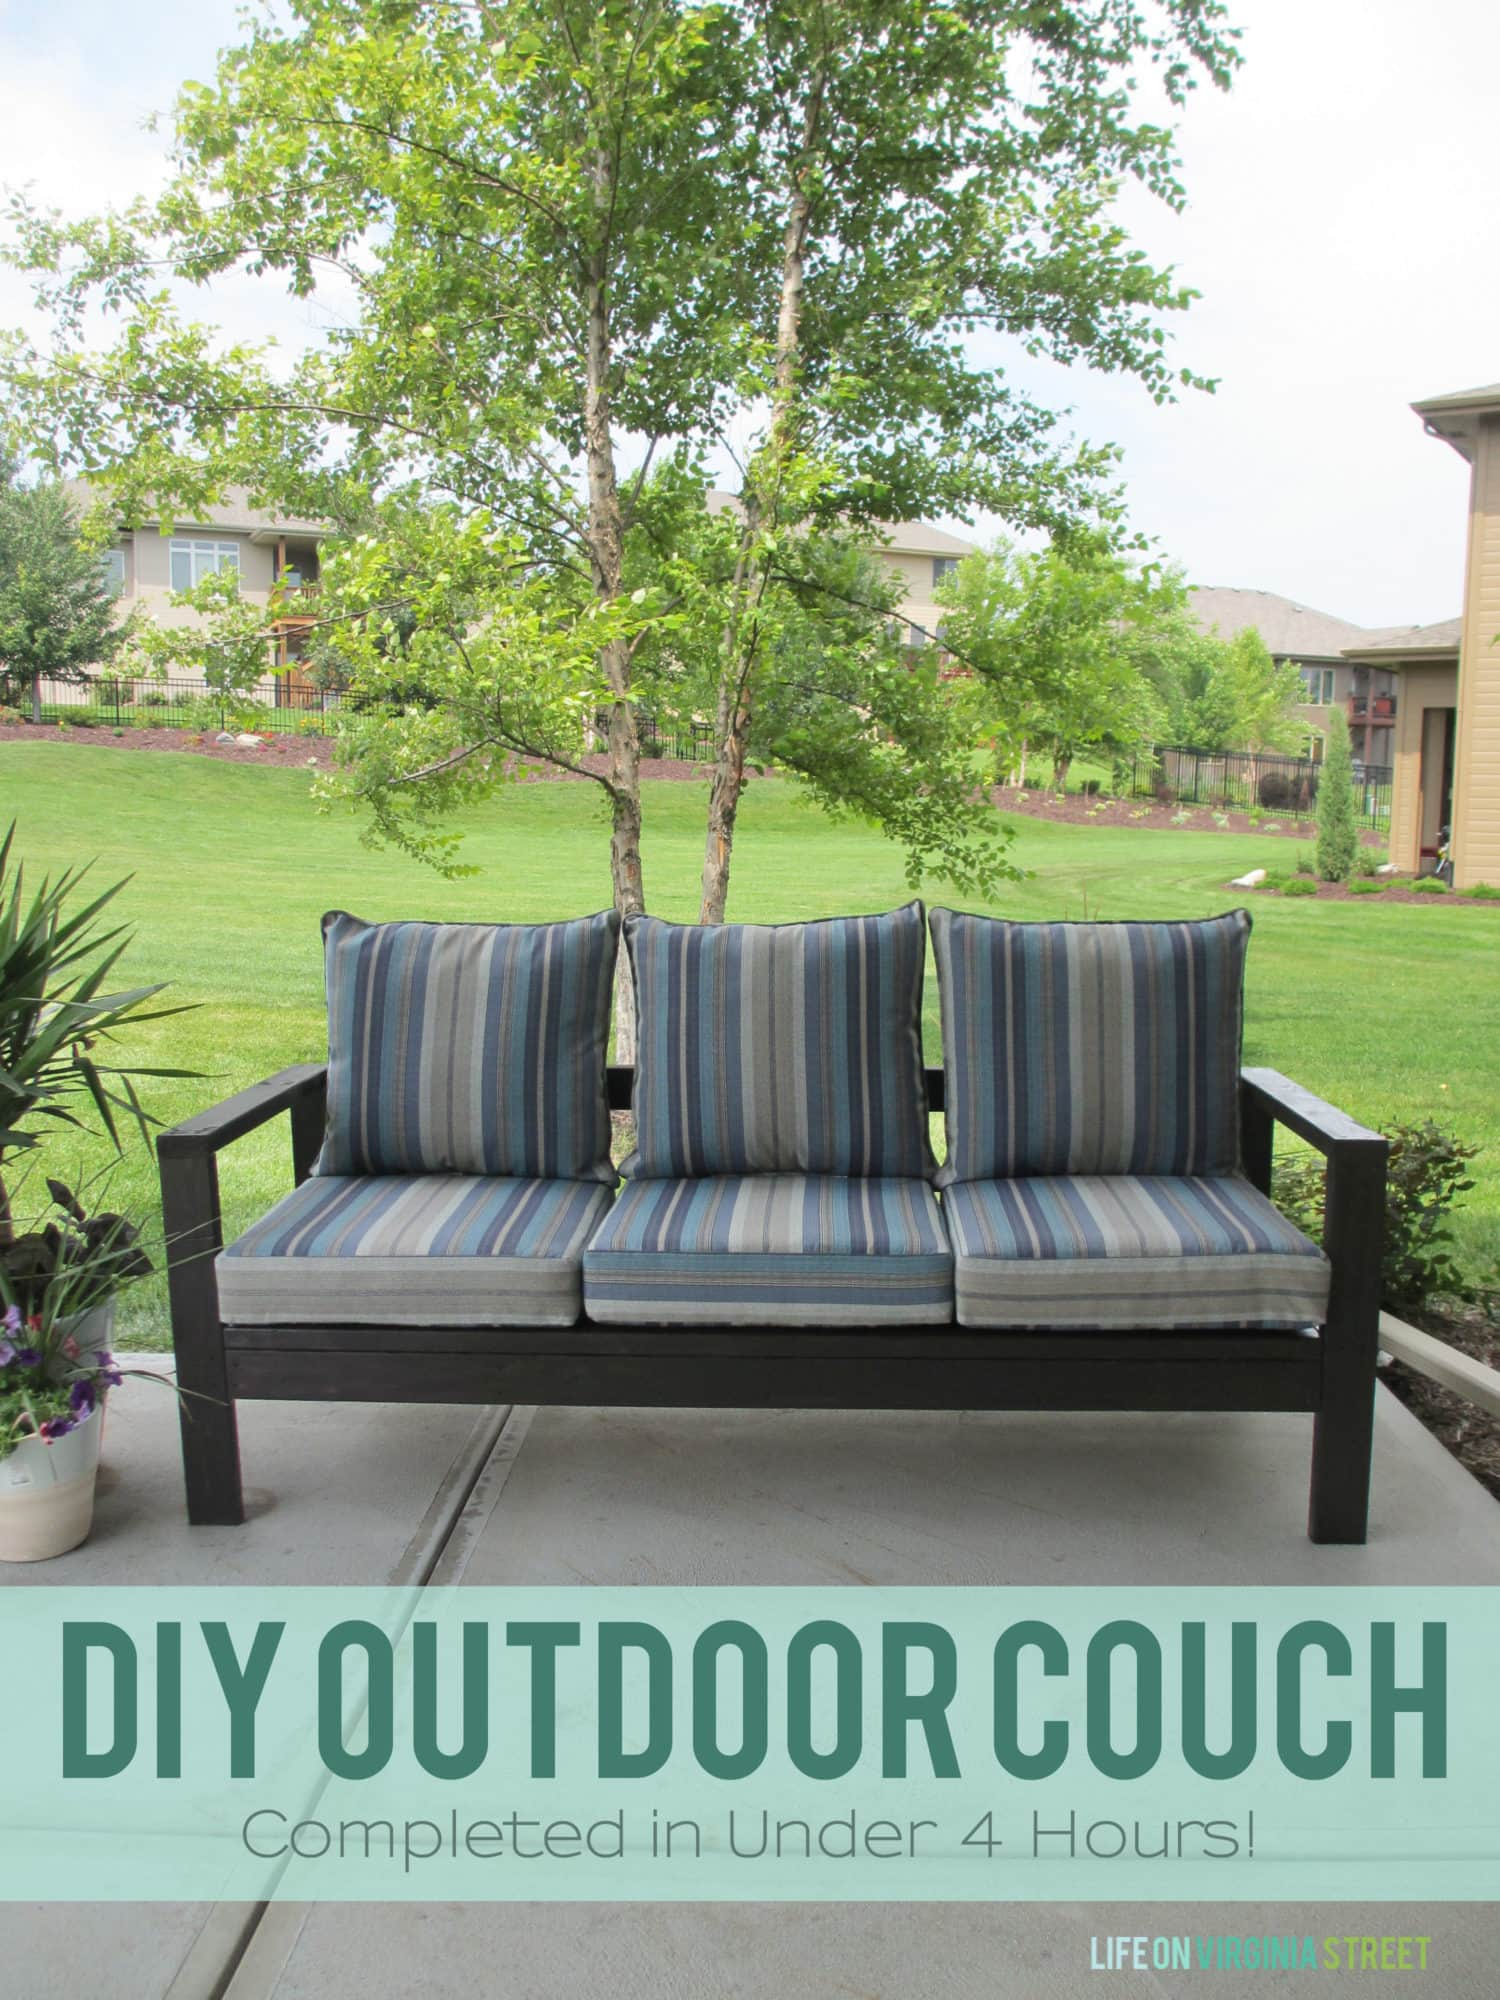 Outdoor Couch How To Build A Diy Outdoor Couch Life On Virginia Street